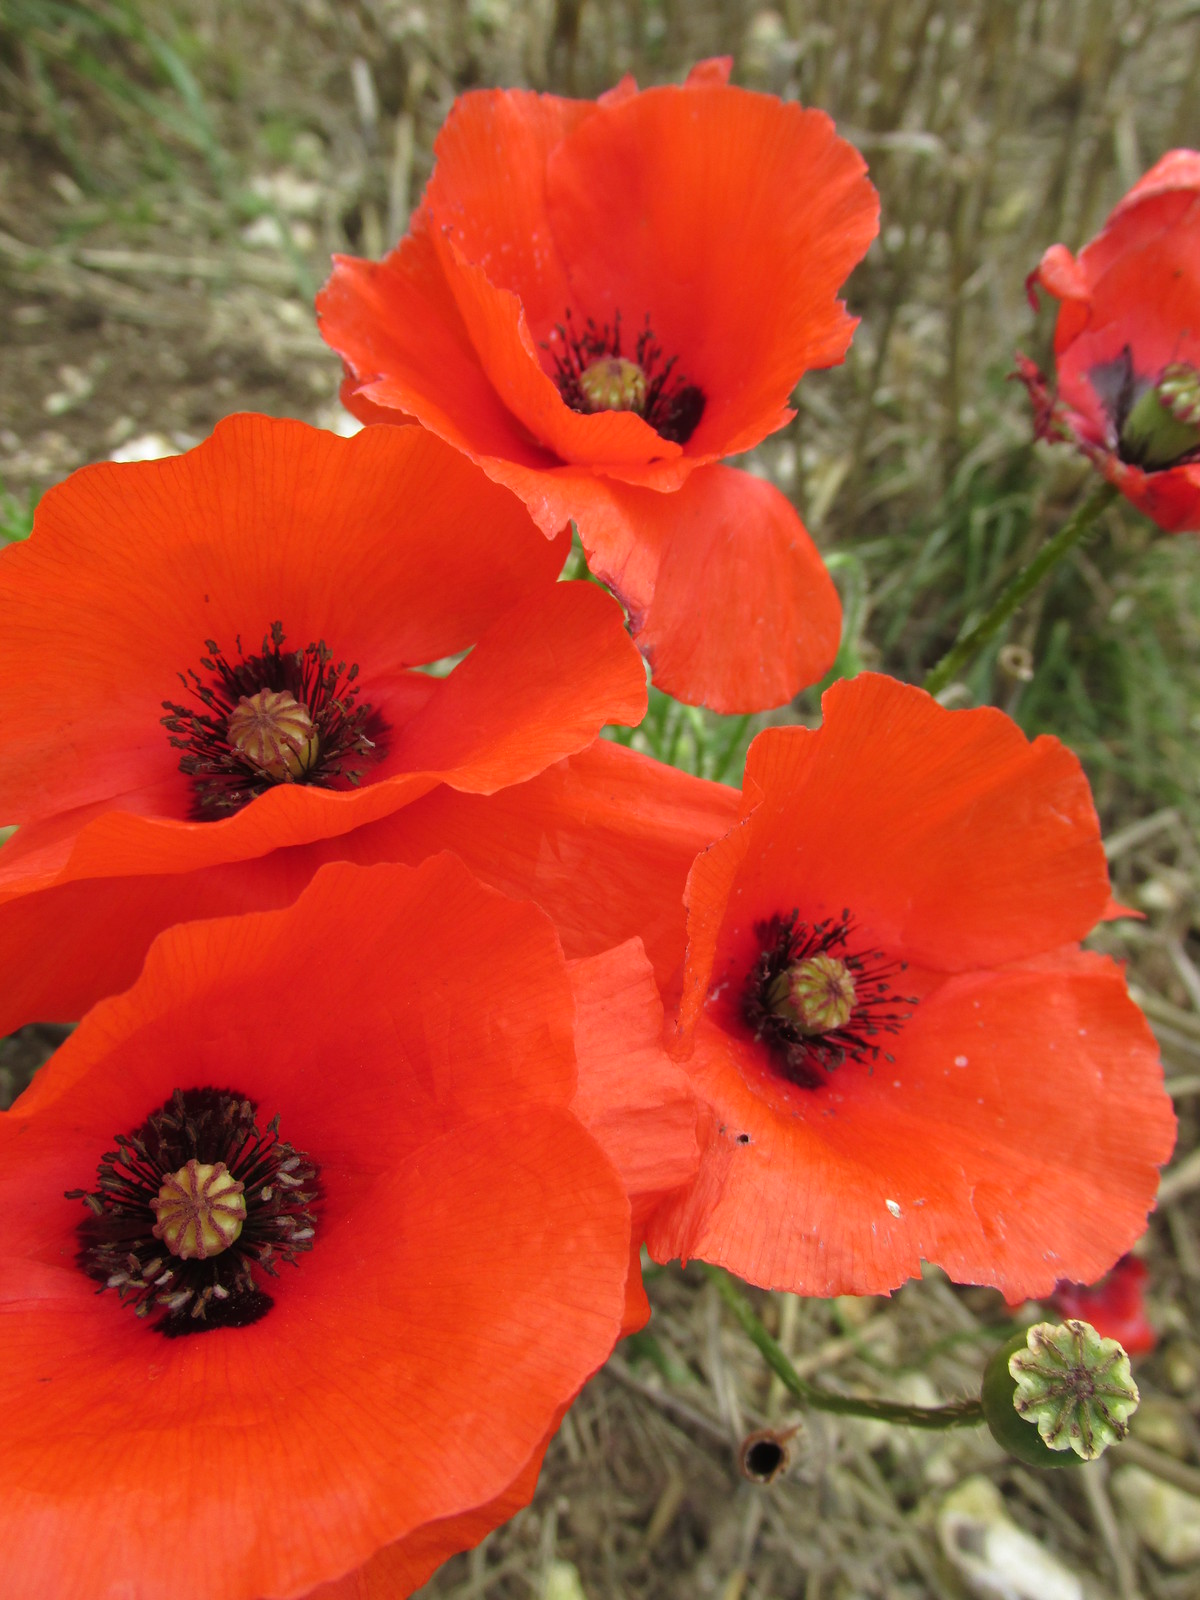 August 29, 2015: Lewes to Seaford South Downs poppies